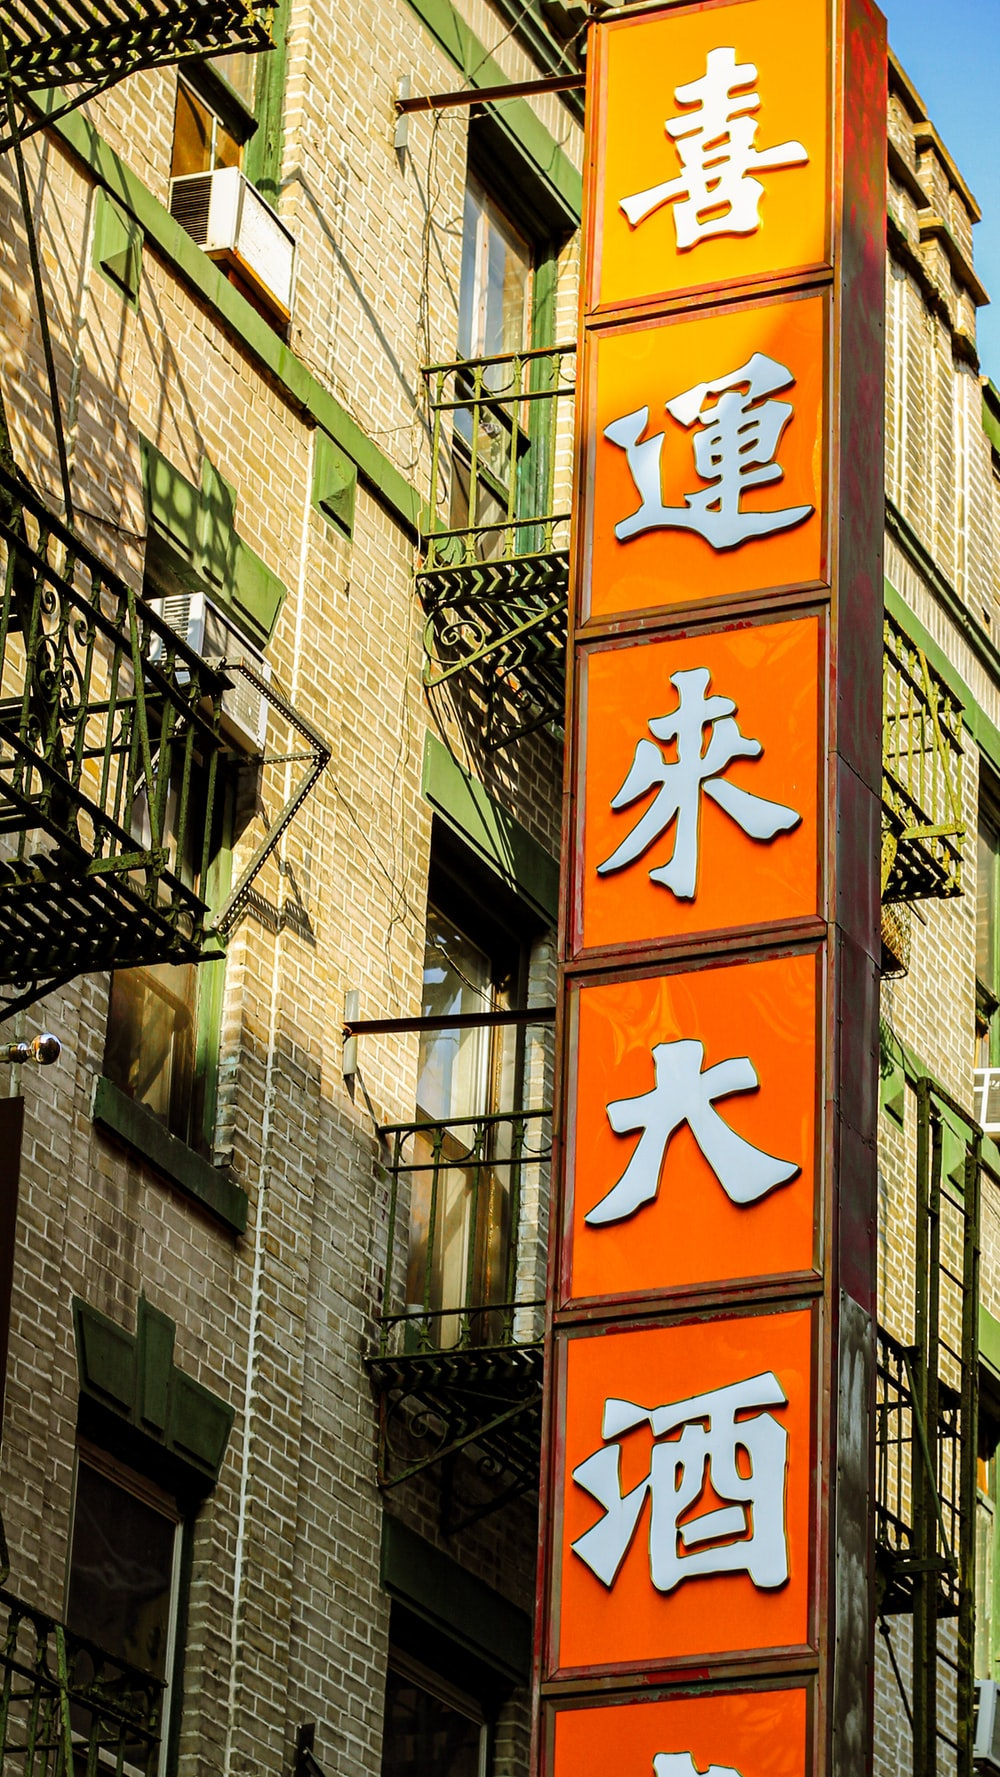 view of orange Kanji script signage